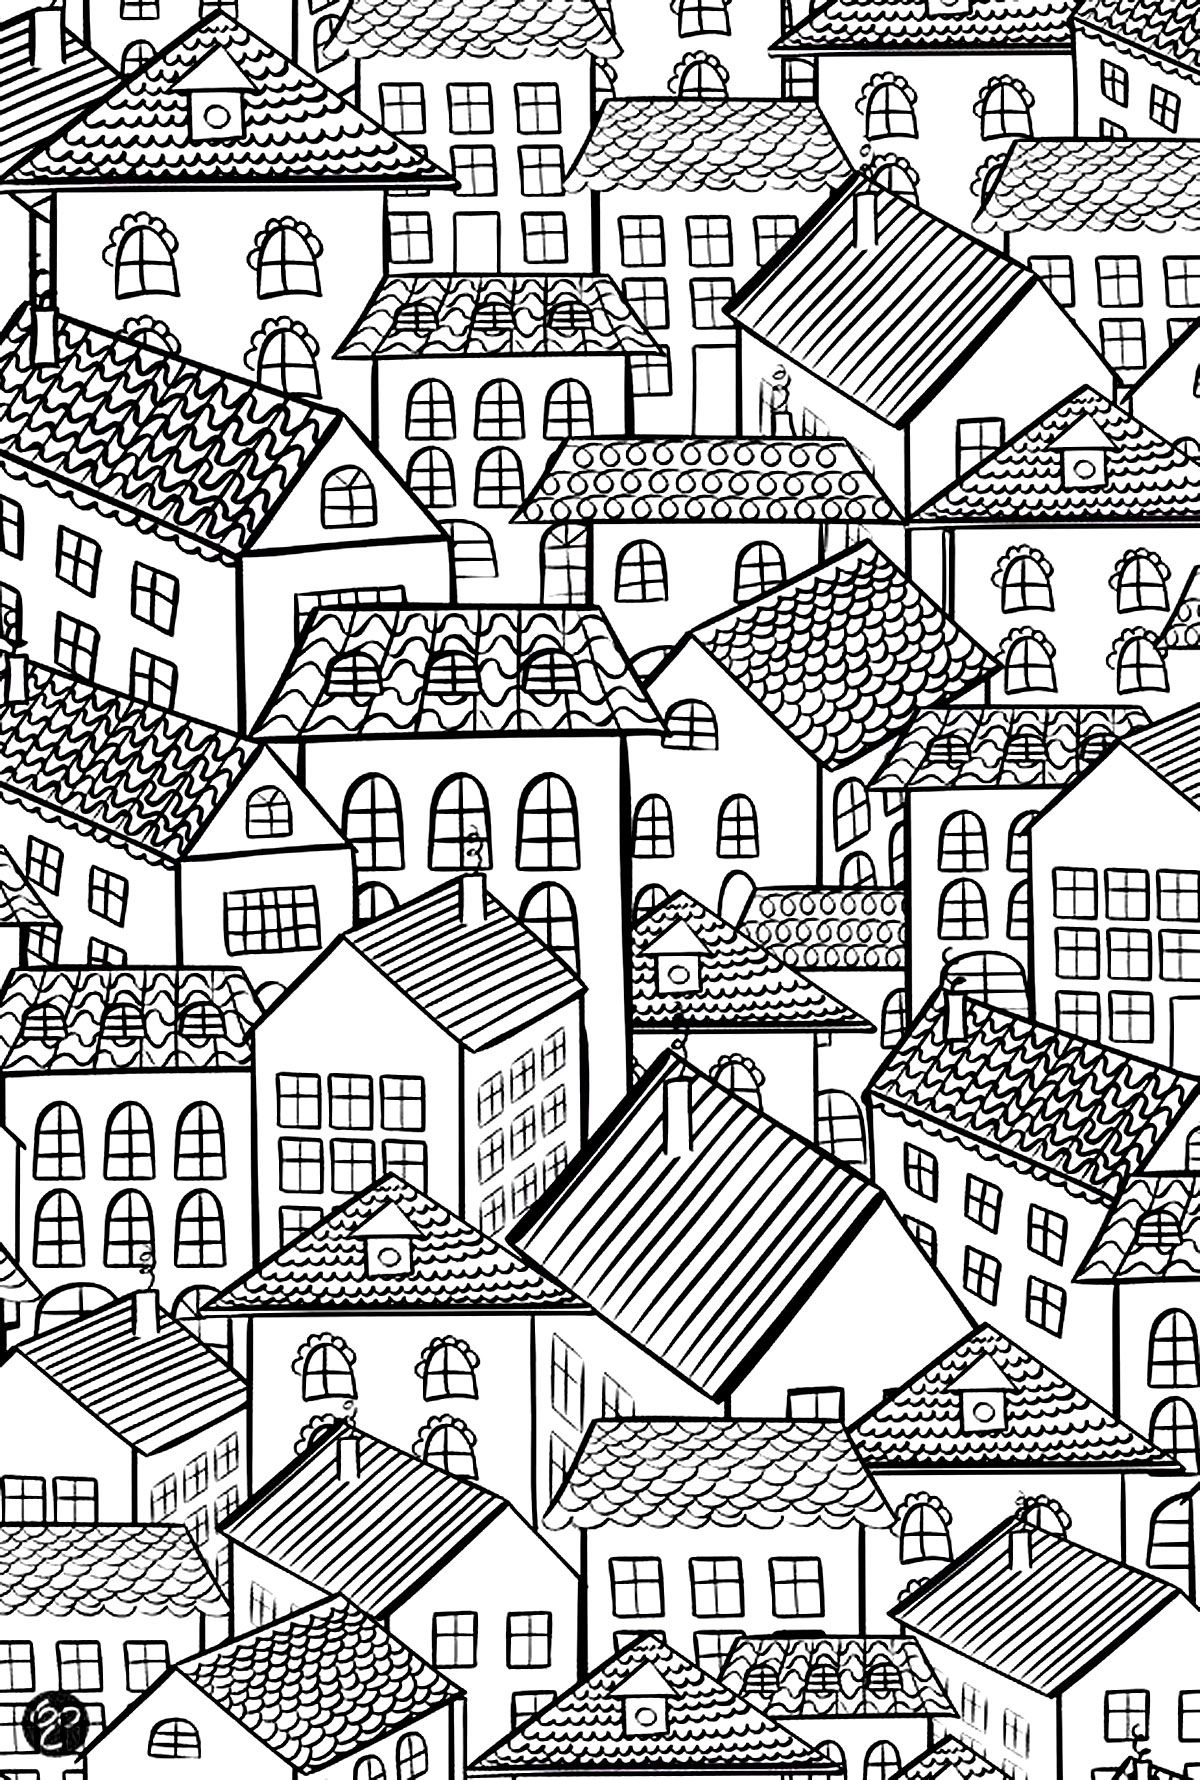 To print this free coloring page coloring architecture village roofs click on the printer icon at the right